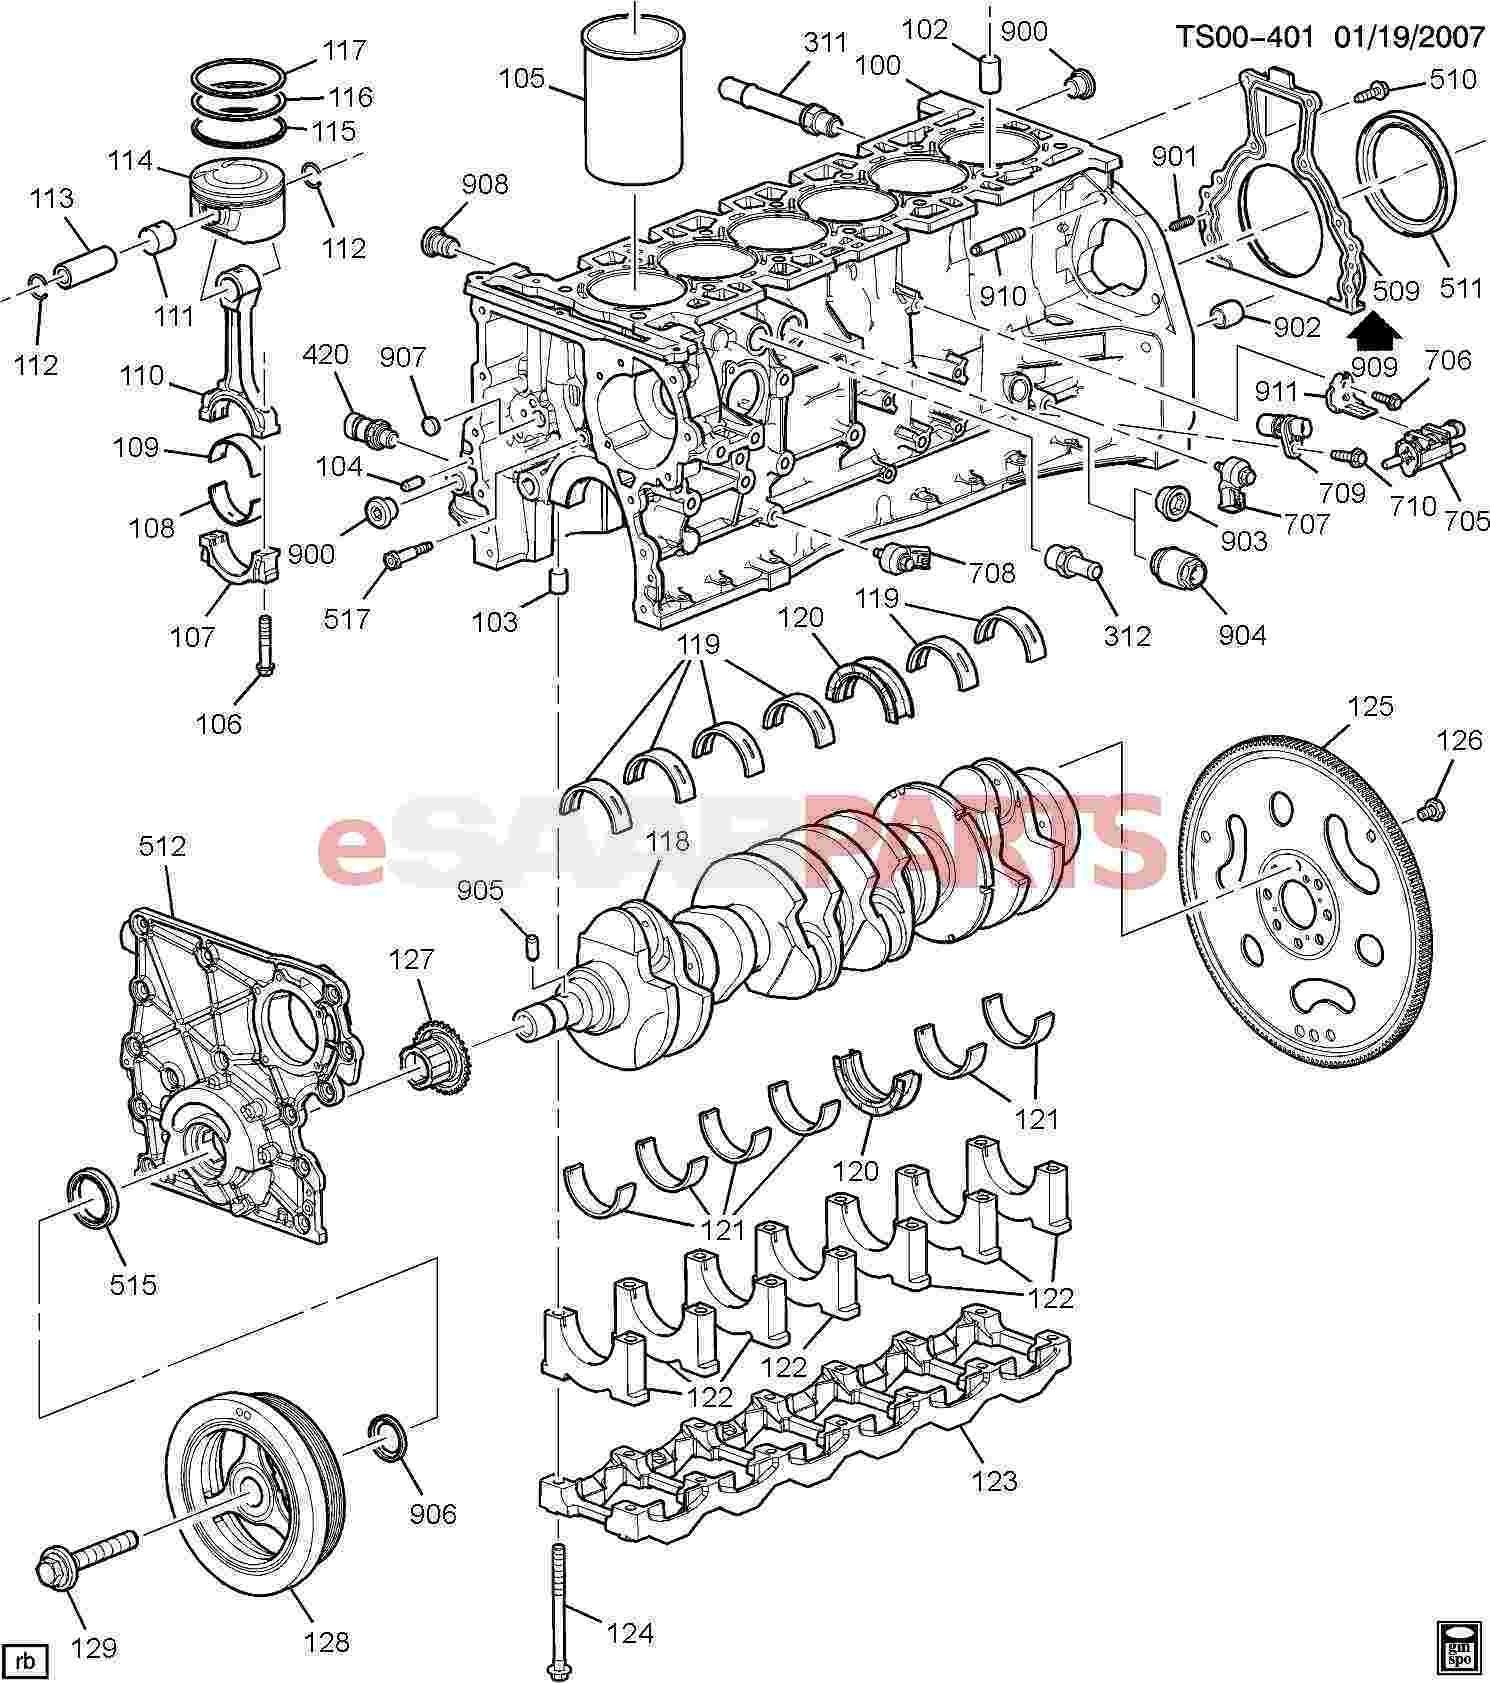 Honda Civic Engine Parts Diagram Auto Engine Parts Diagram ] Saab Plug  M16x1 5—14